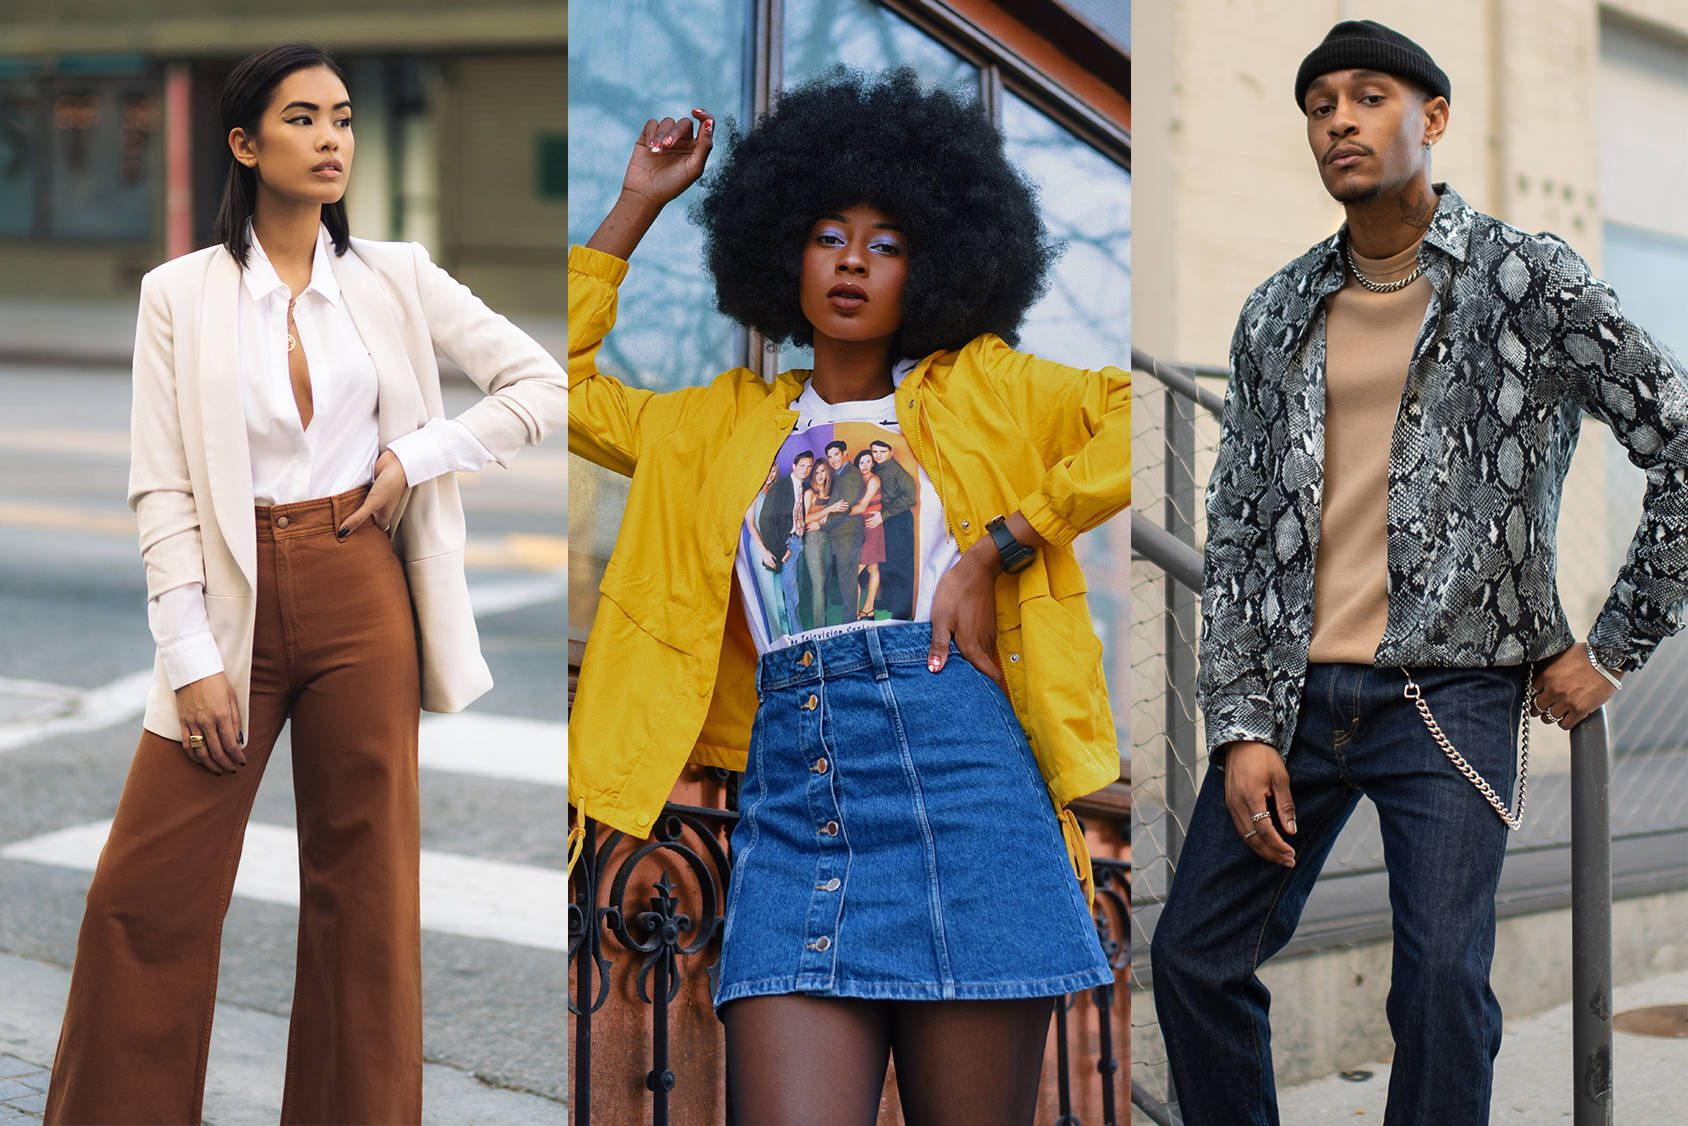 #HMLeague: Get inspired by our 22 ambassadors